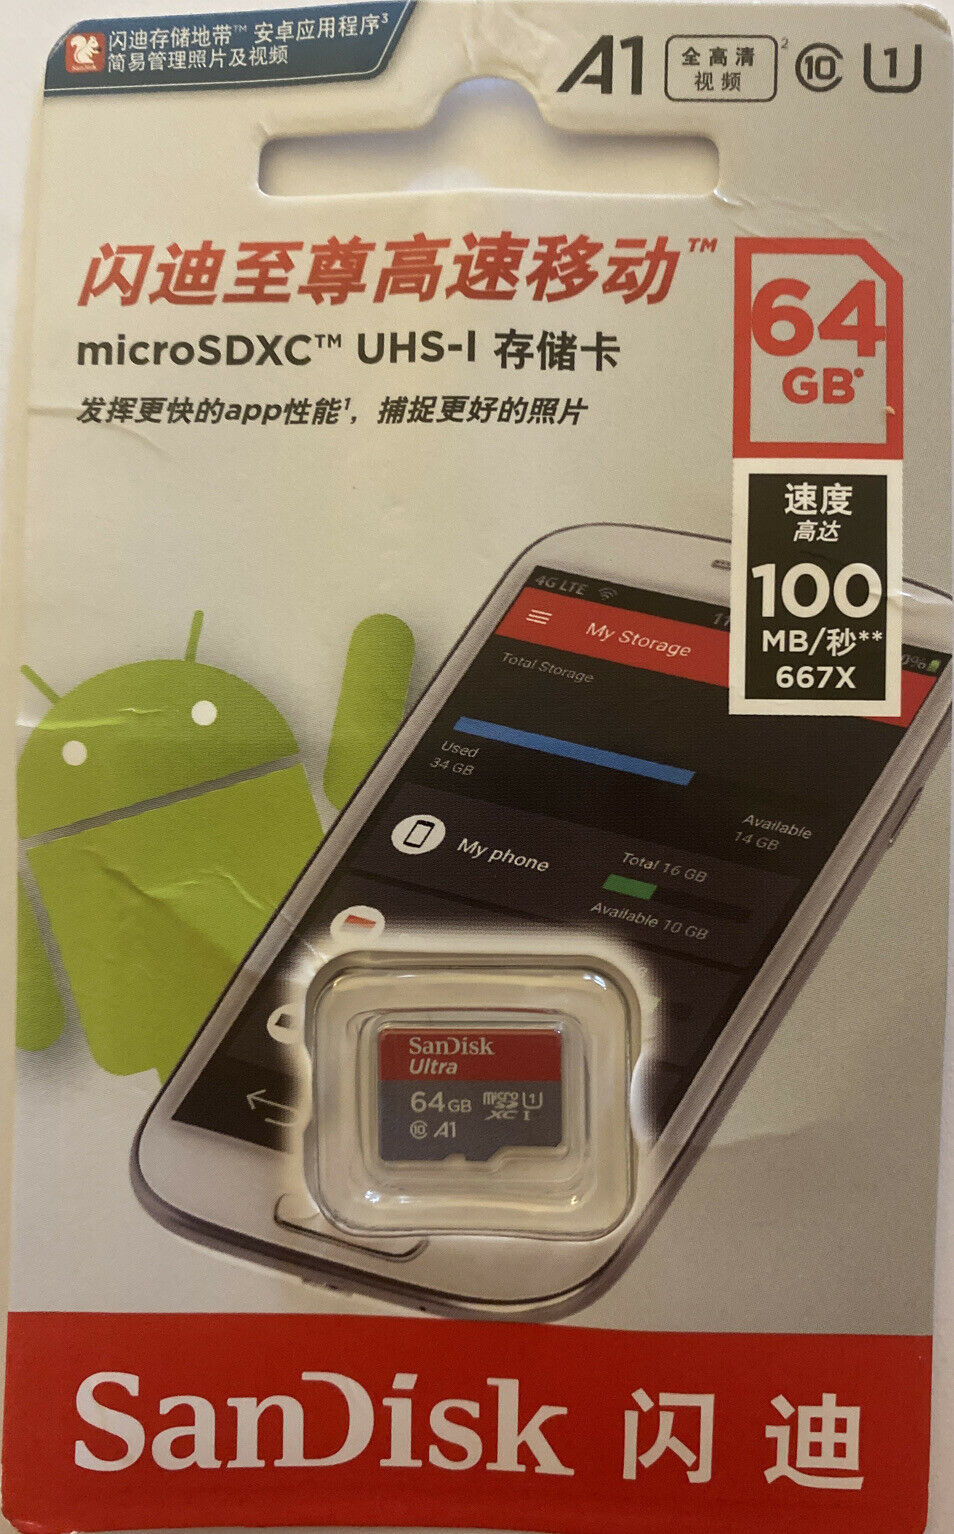 SanDisk Ultra 200GB MicroSDXC Verified for Xolo Q1011 by SanFlash 100MBs A1 U1 C10 Works with SanDisk